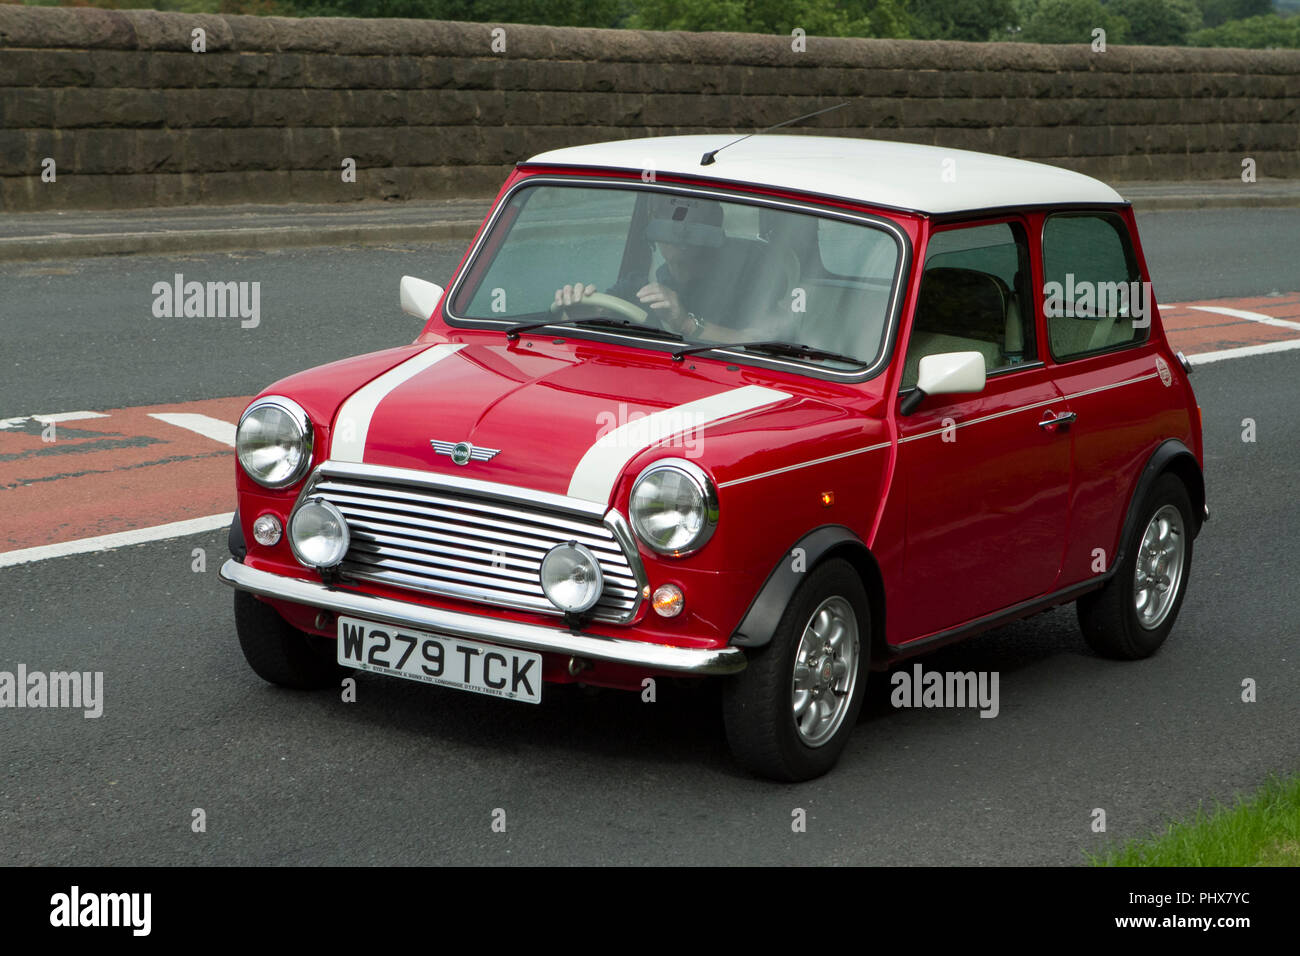 Multi coloured 2000 Rover Mini Cooper at Hoghton towers annual classic vintage car rally, UK - Stock Image